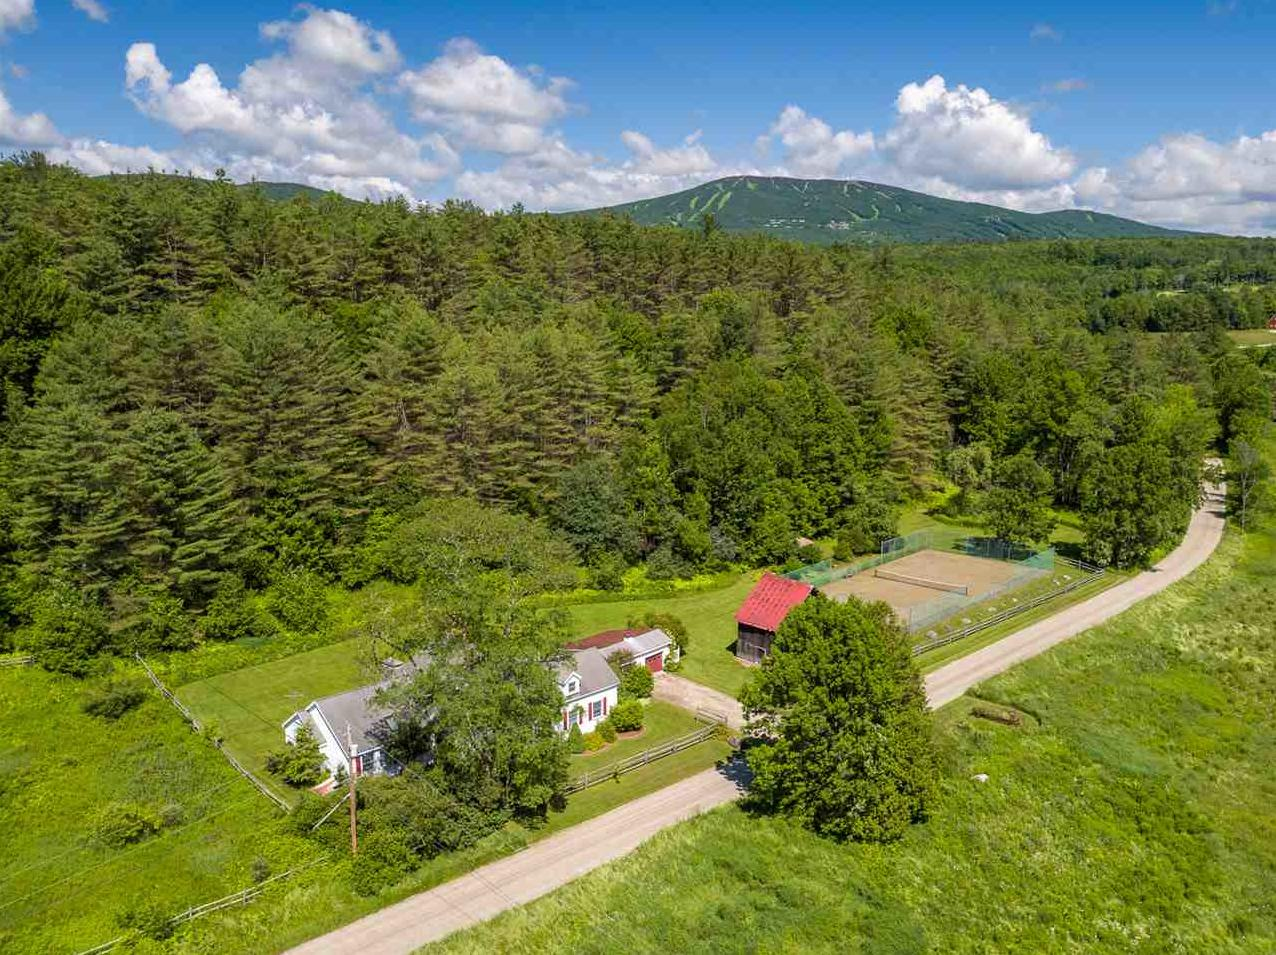 Photo of 1585 East Hill Road Ludlow VT 05149